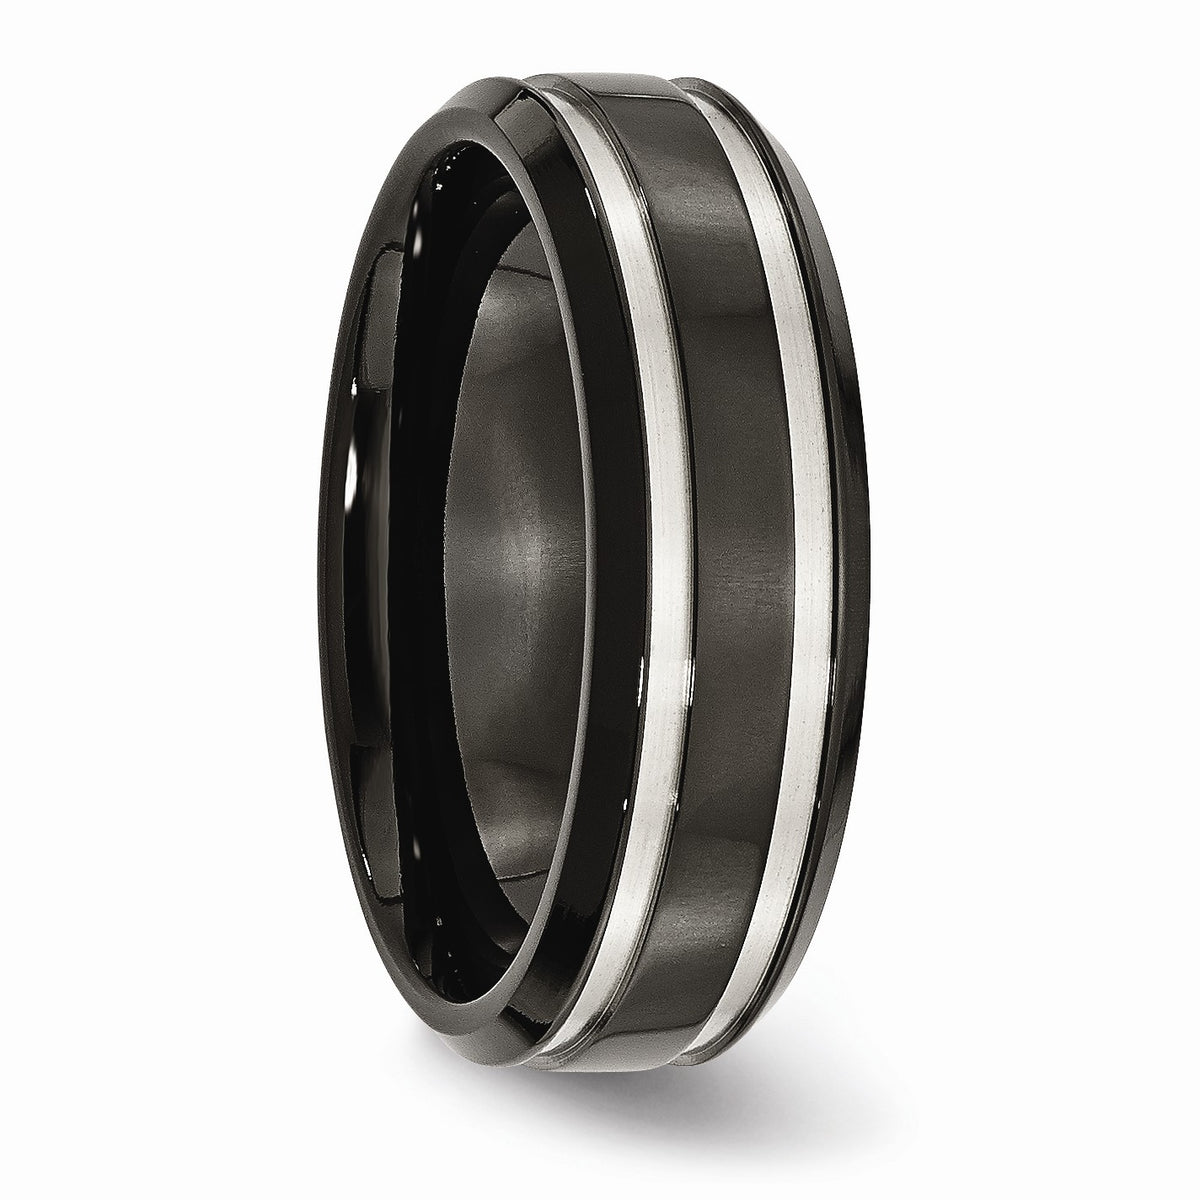 Alternate view of the Black-Plated Titanium, 7mm Grooved Unisex Comfort Fit Band by The Black Bow Jewelry Co.